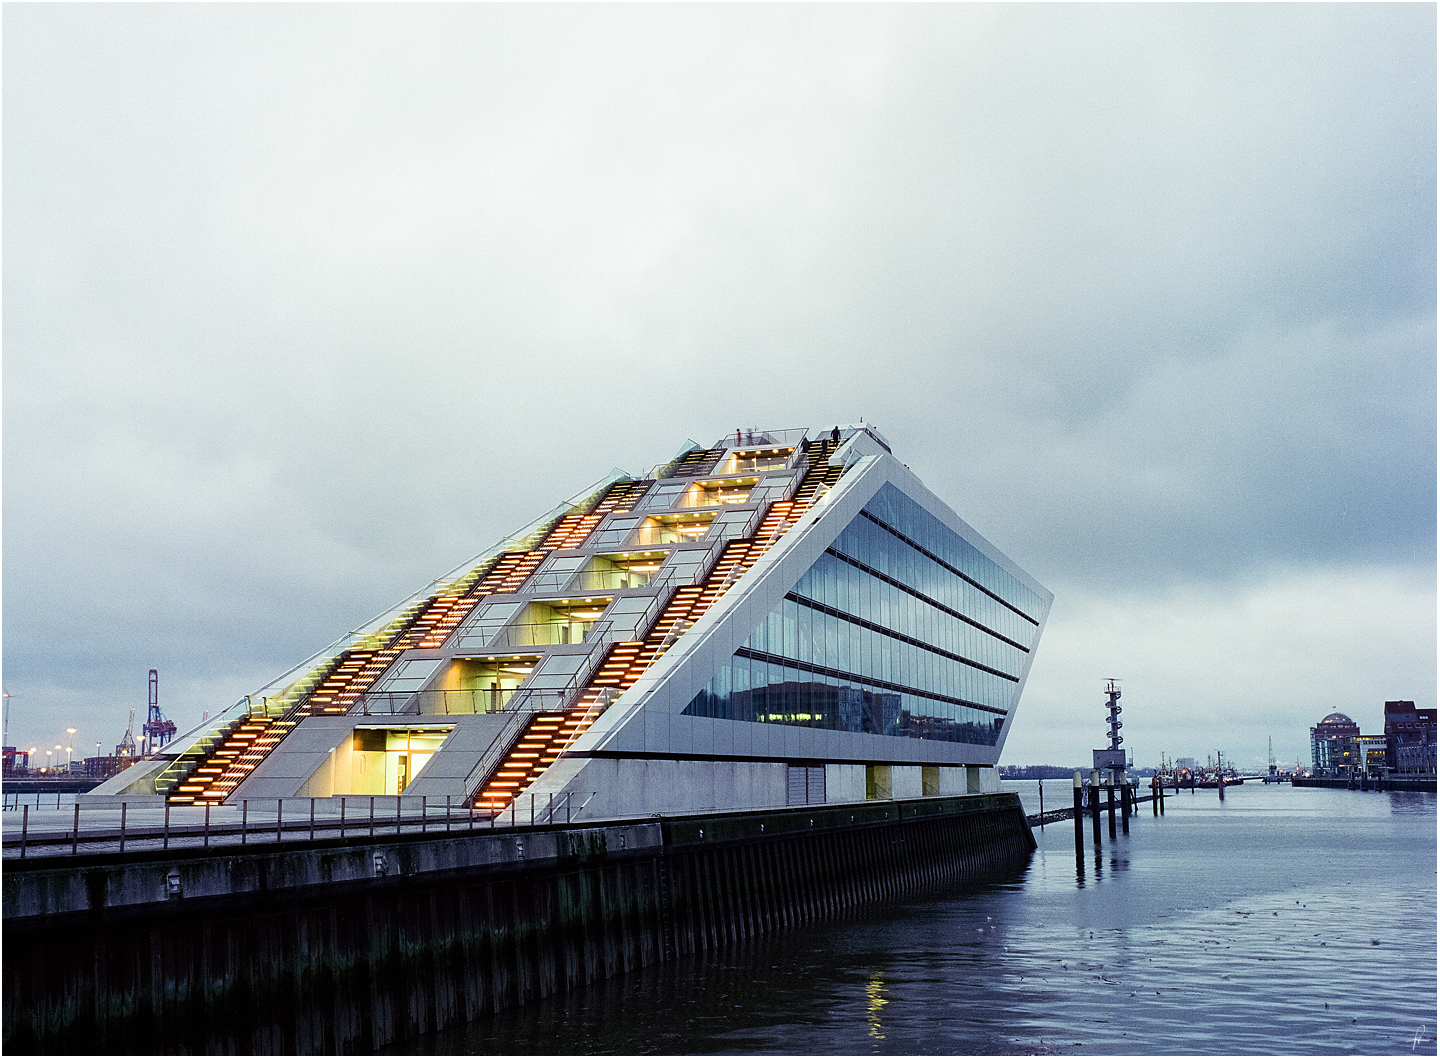 Dockland by karlomat